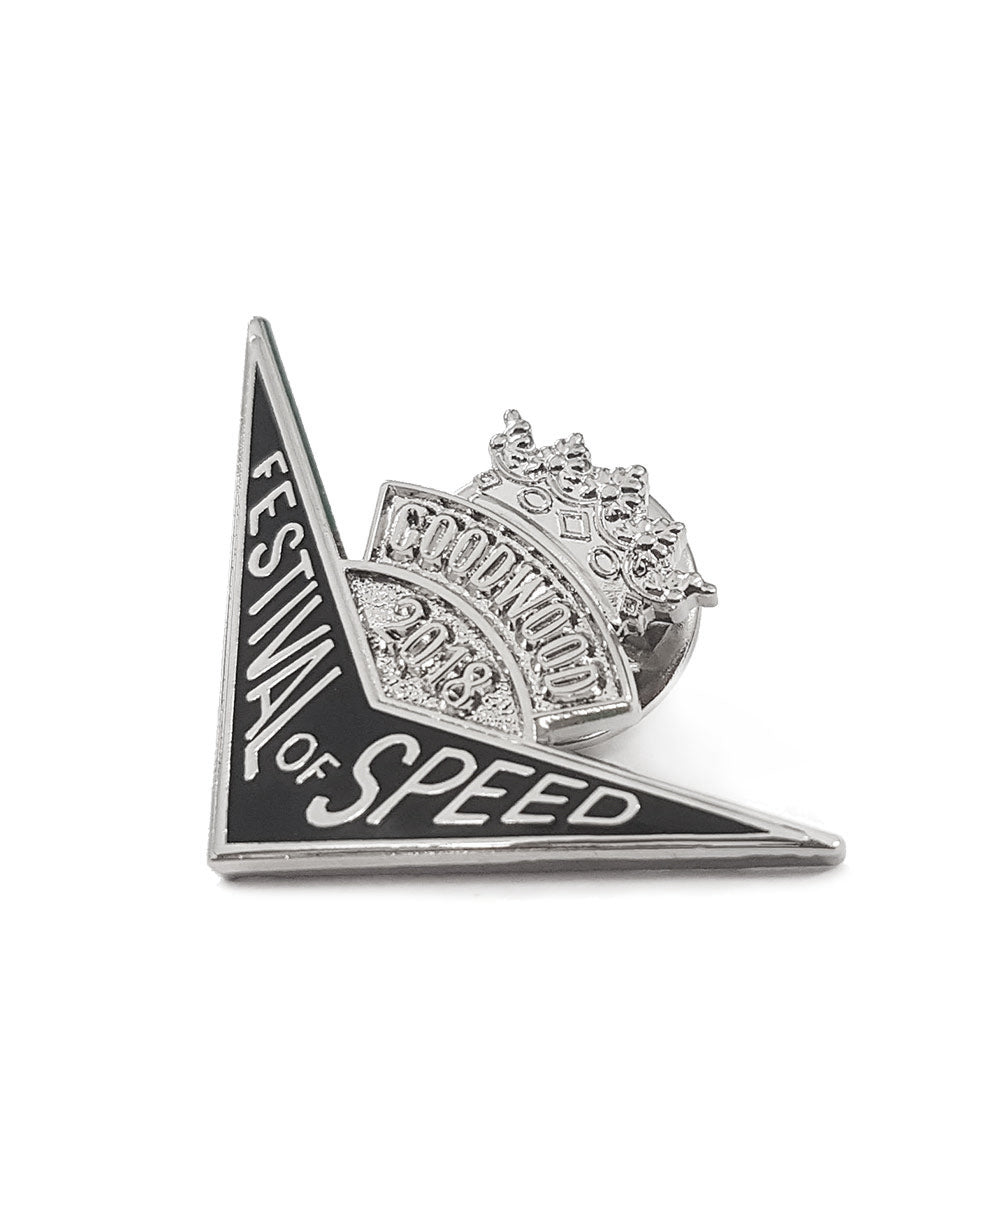 Festival of Speed Pin Badge 2018